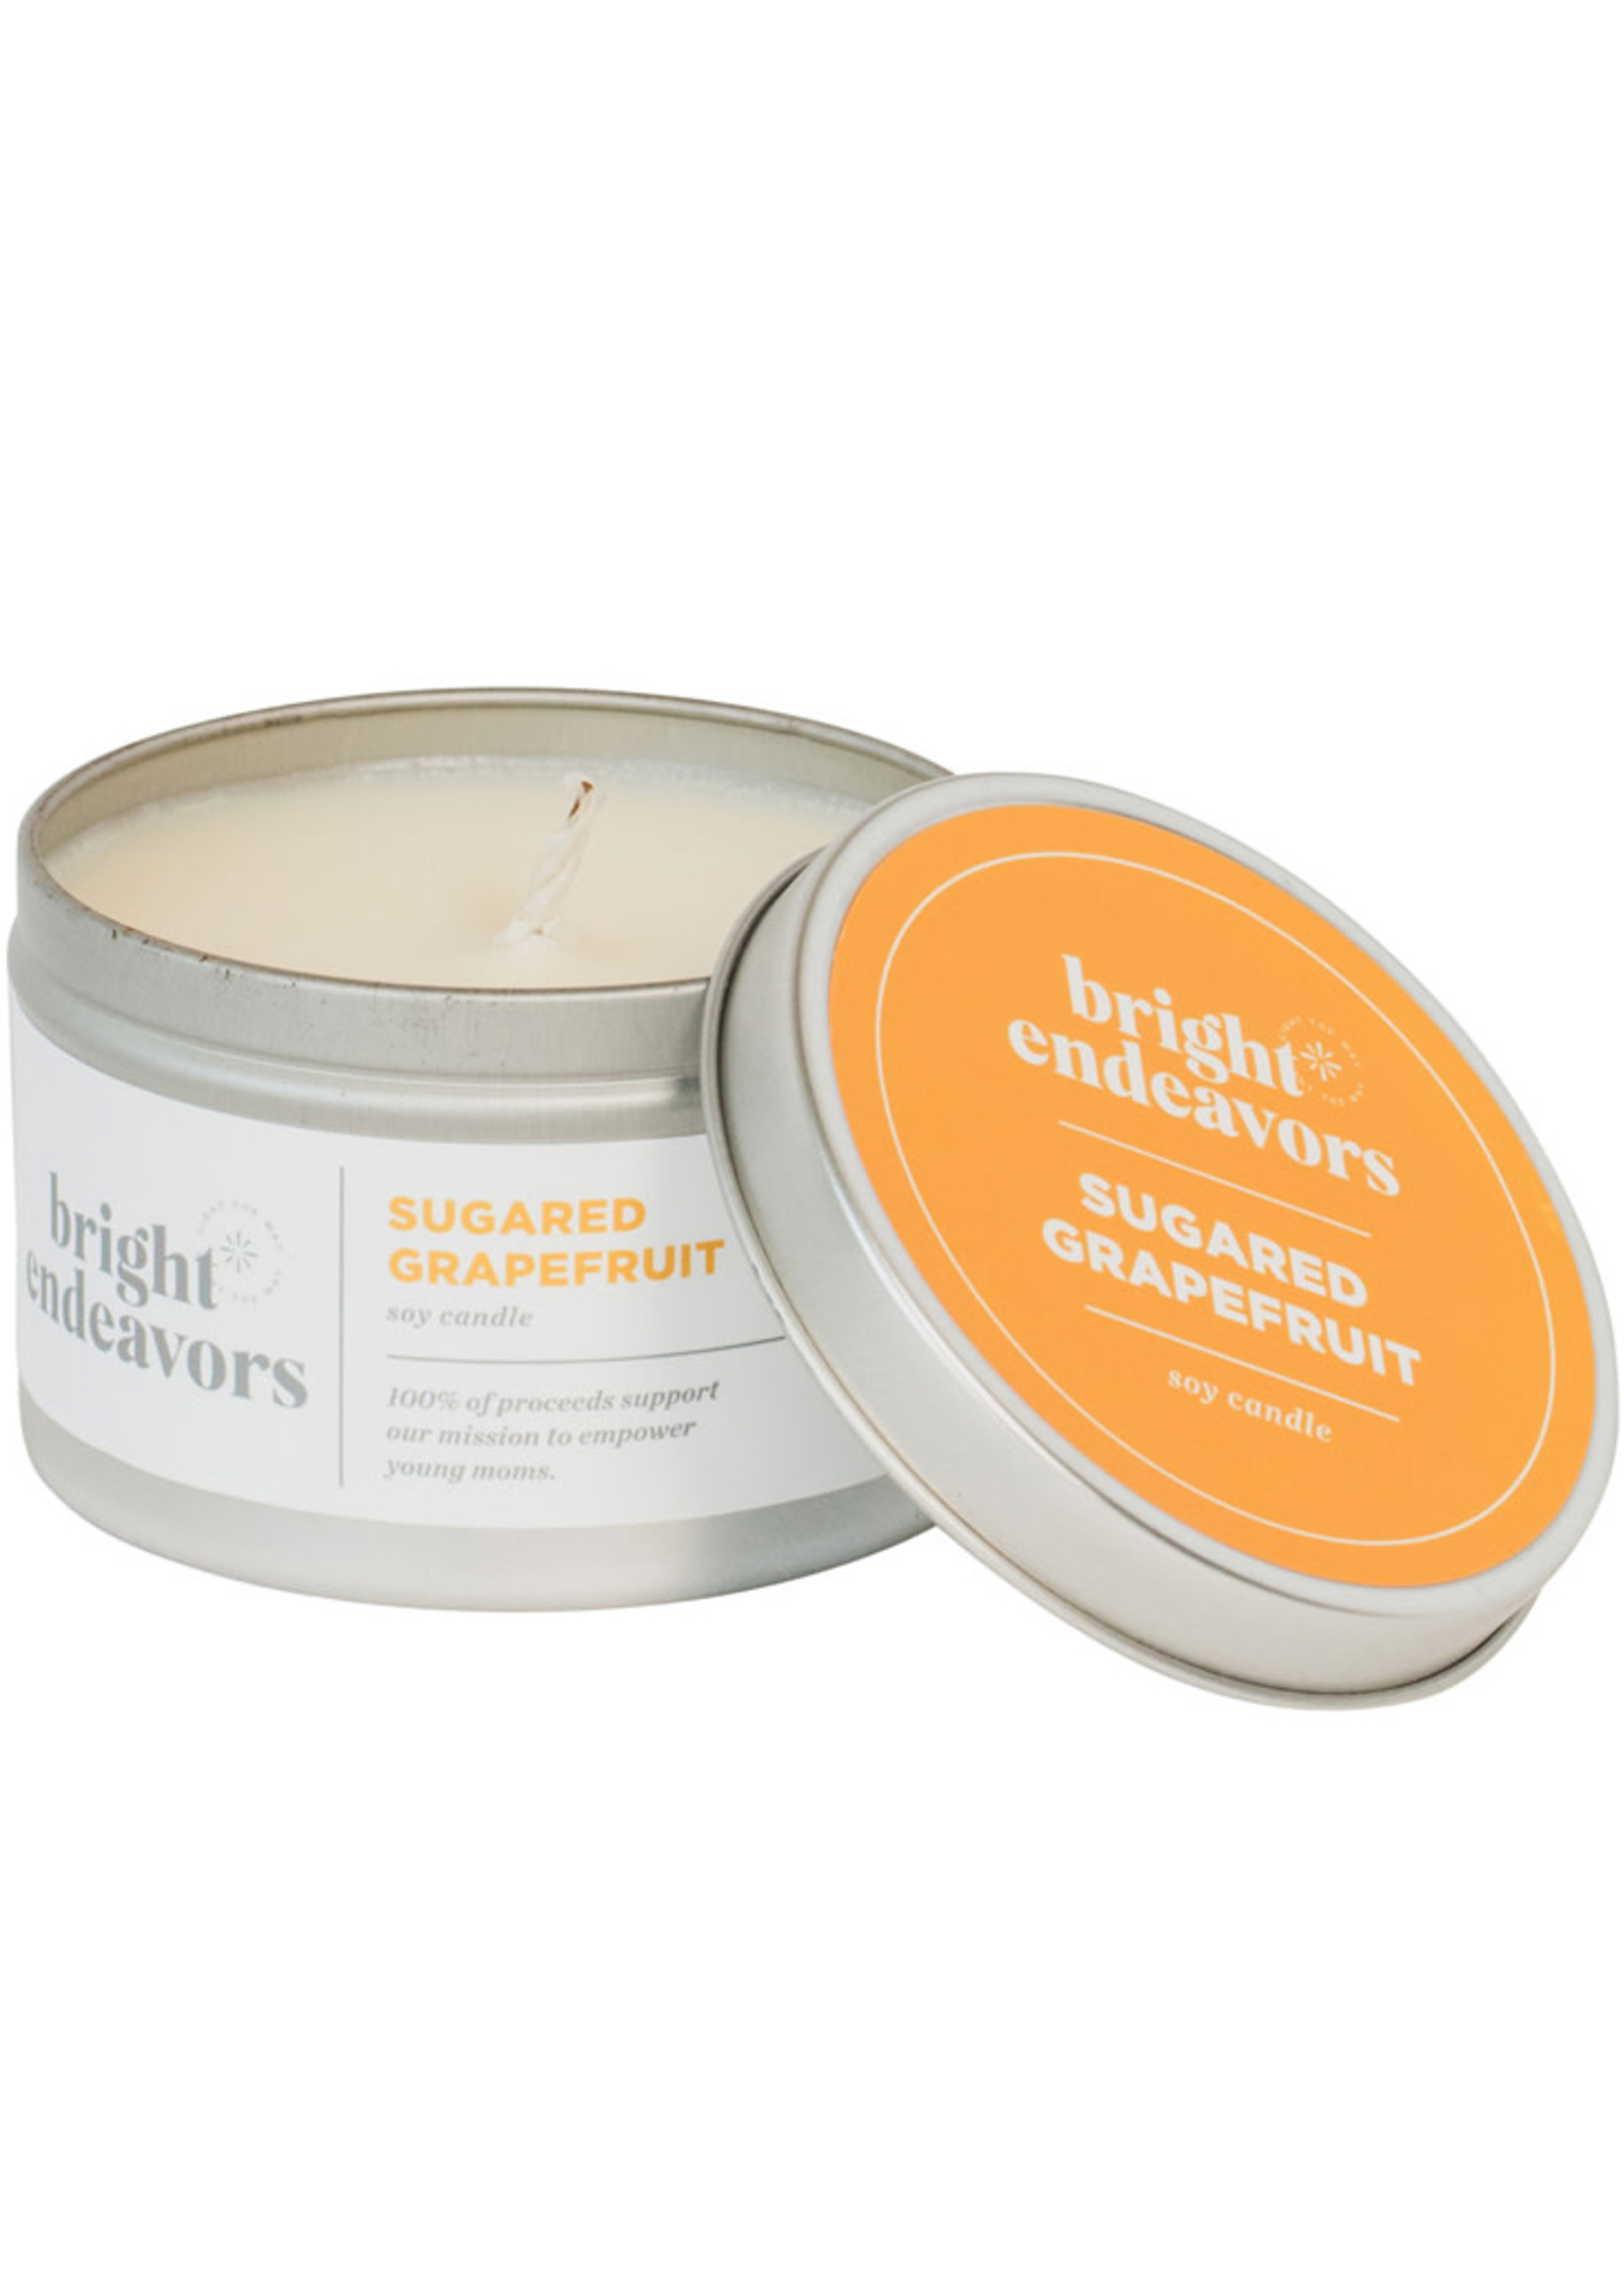 Bright Endeavors Sugared Grapefruit Soy Candle